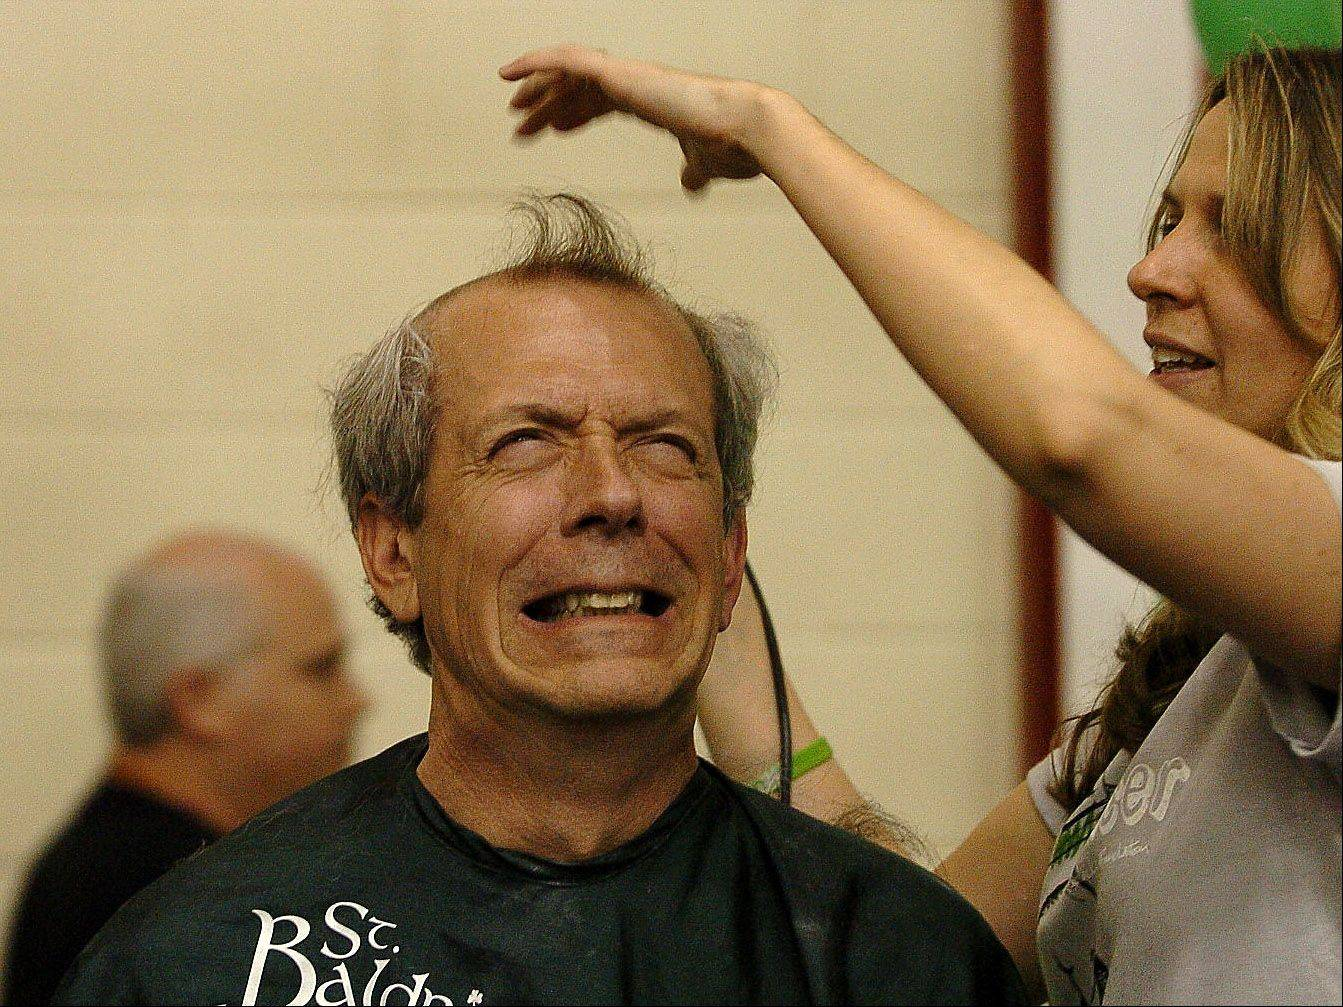 Band Director Kevin Miller gets his head shaved by Josette Martiny of Sport Clips during the St. Baldrick's head shaving event at Schaumburg High School.